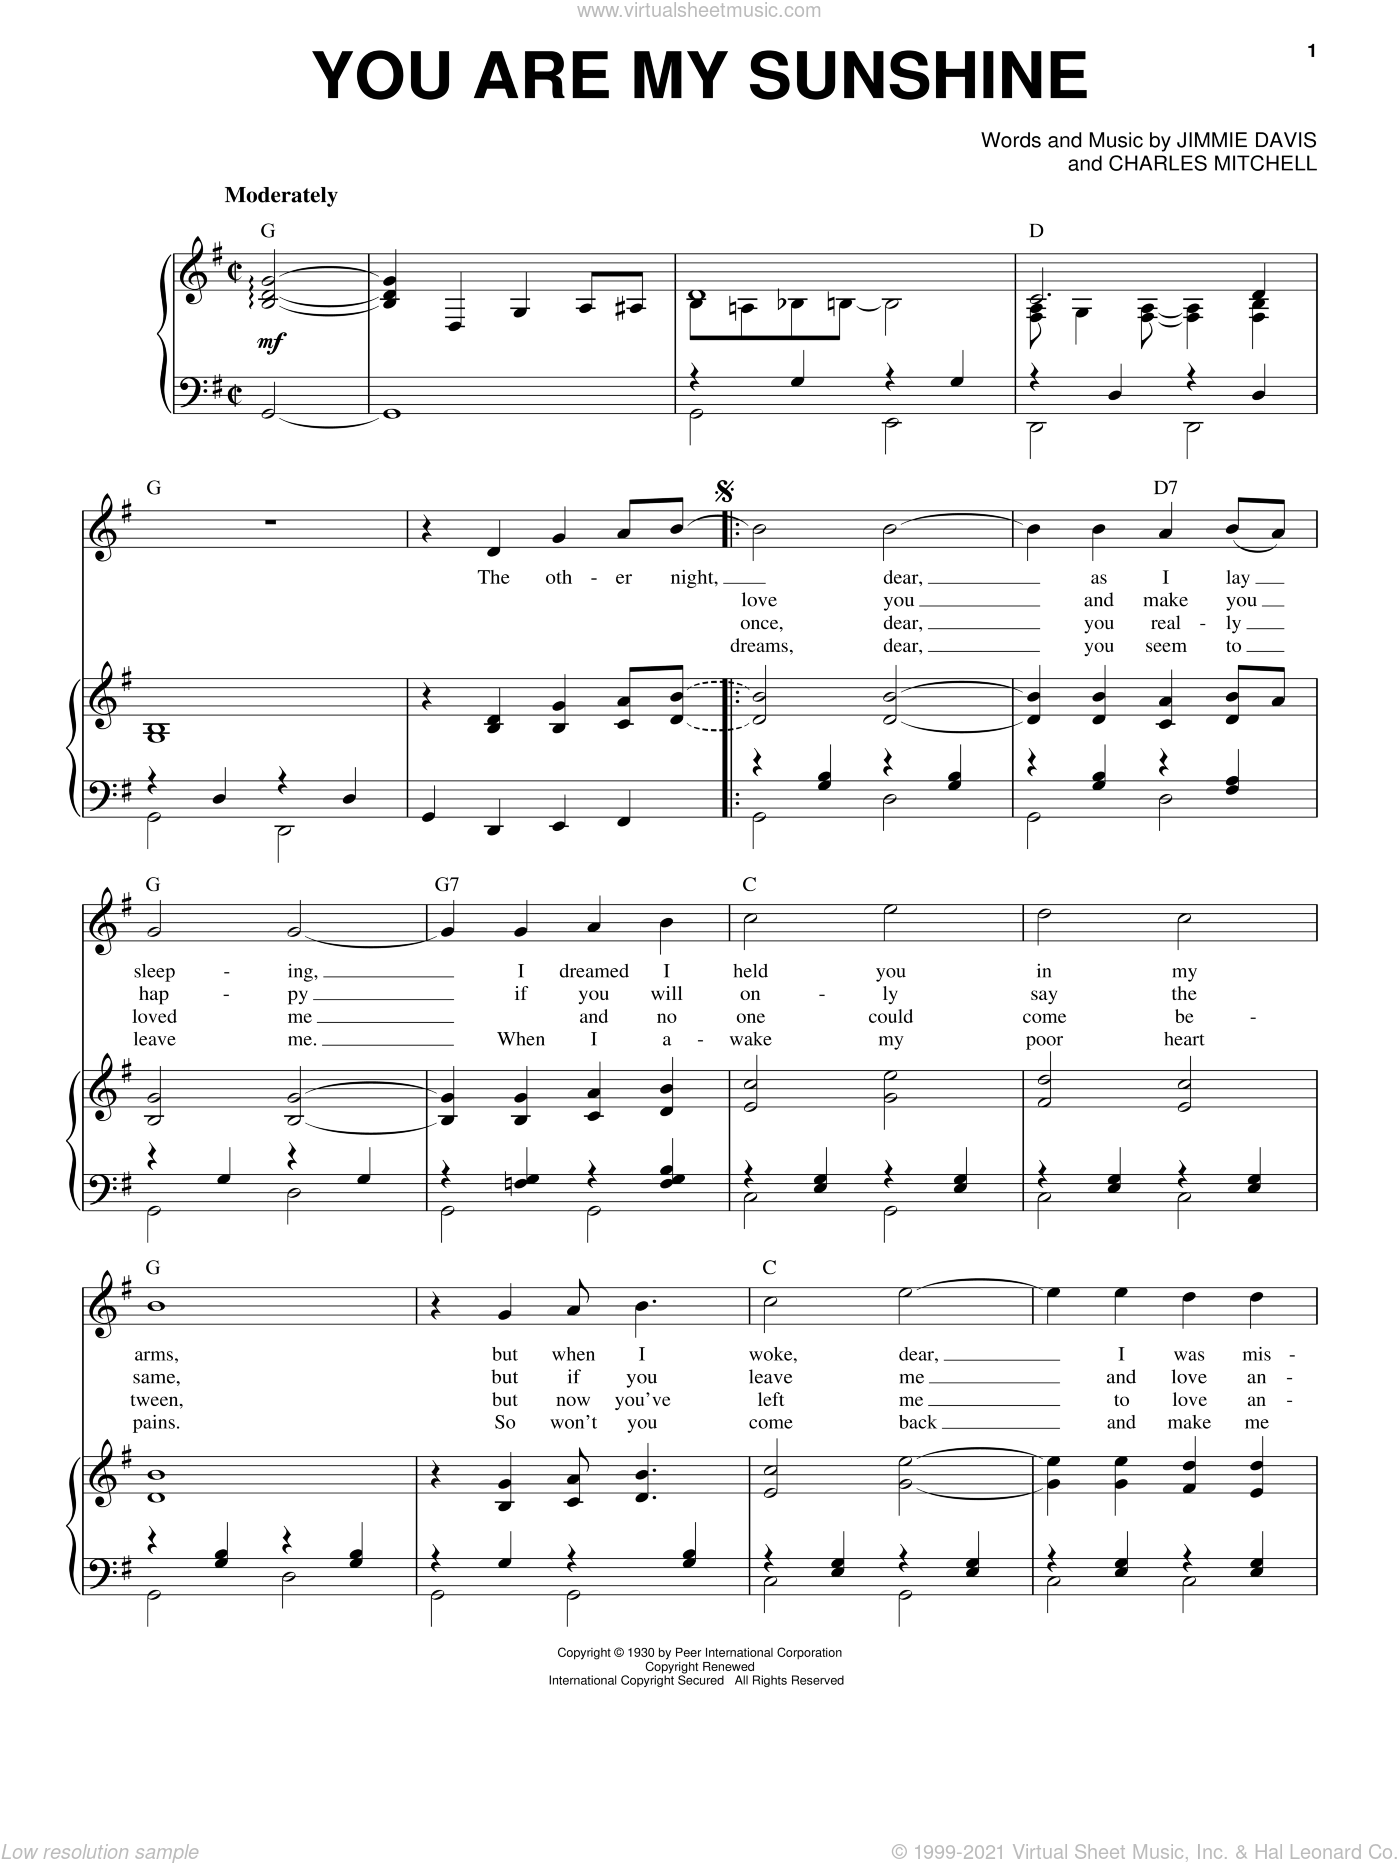 You Are My Sunshine sheet music for voice and piano by Norman Blake, O Brother, Where Art Thou? (Movie), Charles Mitchell and Jimmie Davis, intermediate skill level